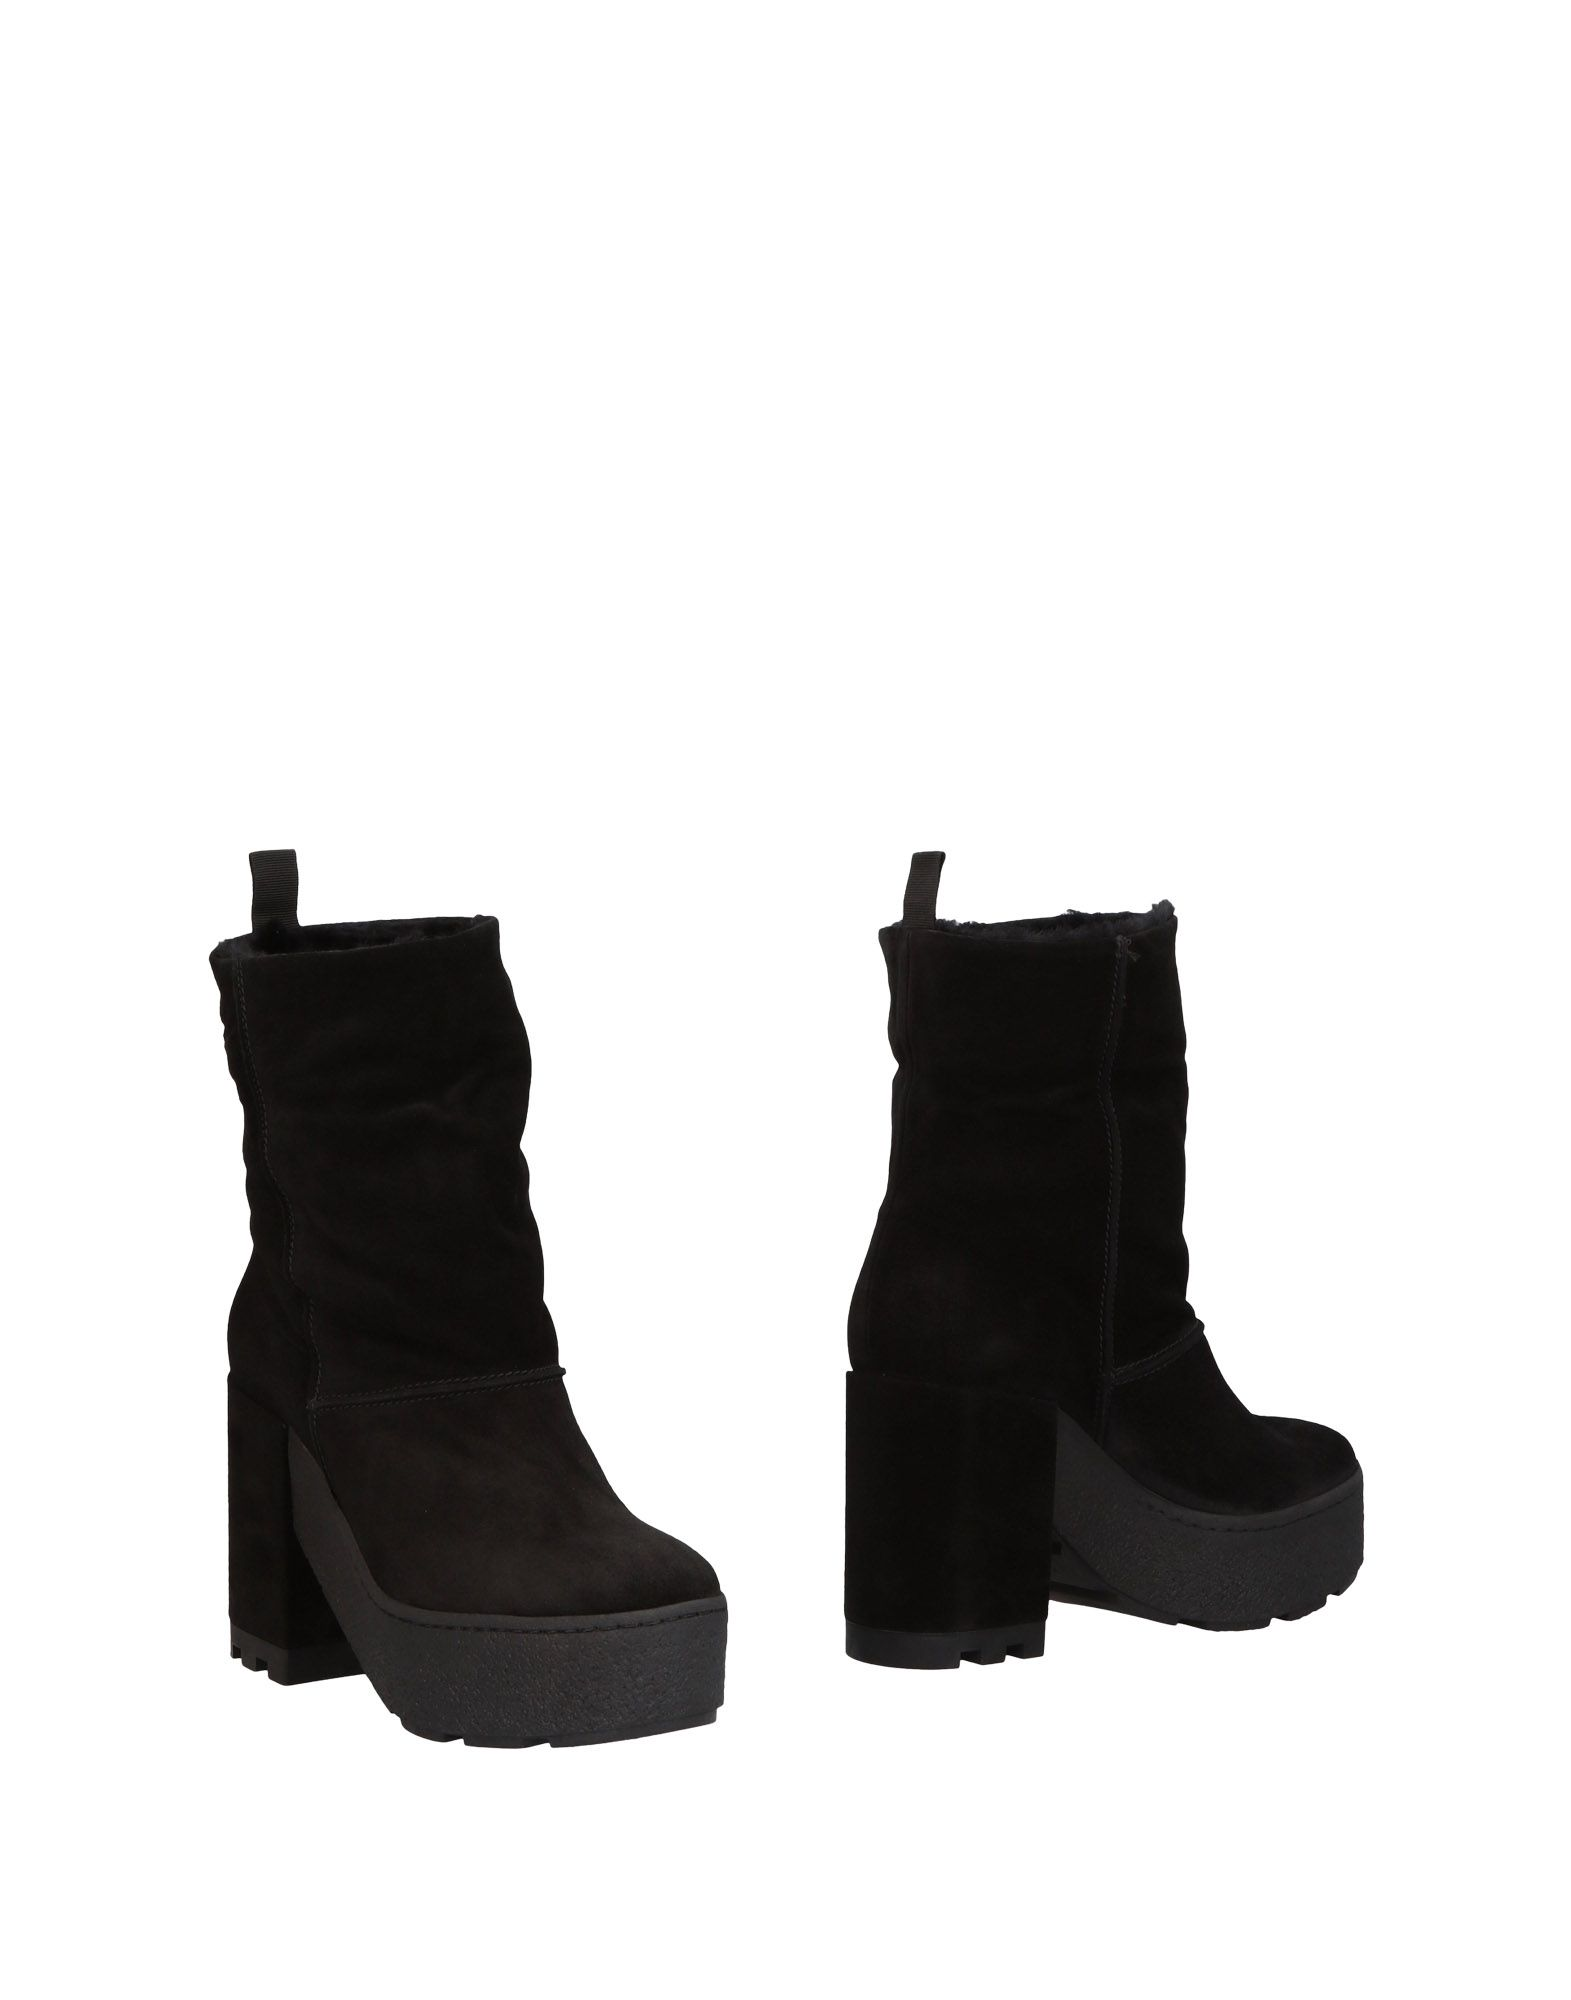 Vic Matiē Ankle Boot - Women Vic Matiē Ankle Boots Boots Boots online on  United Kingdom - 11471831EN 97dd2d